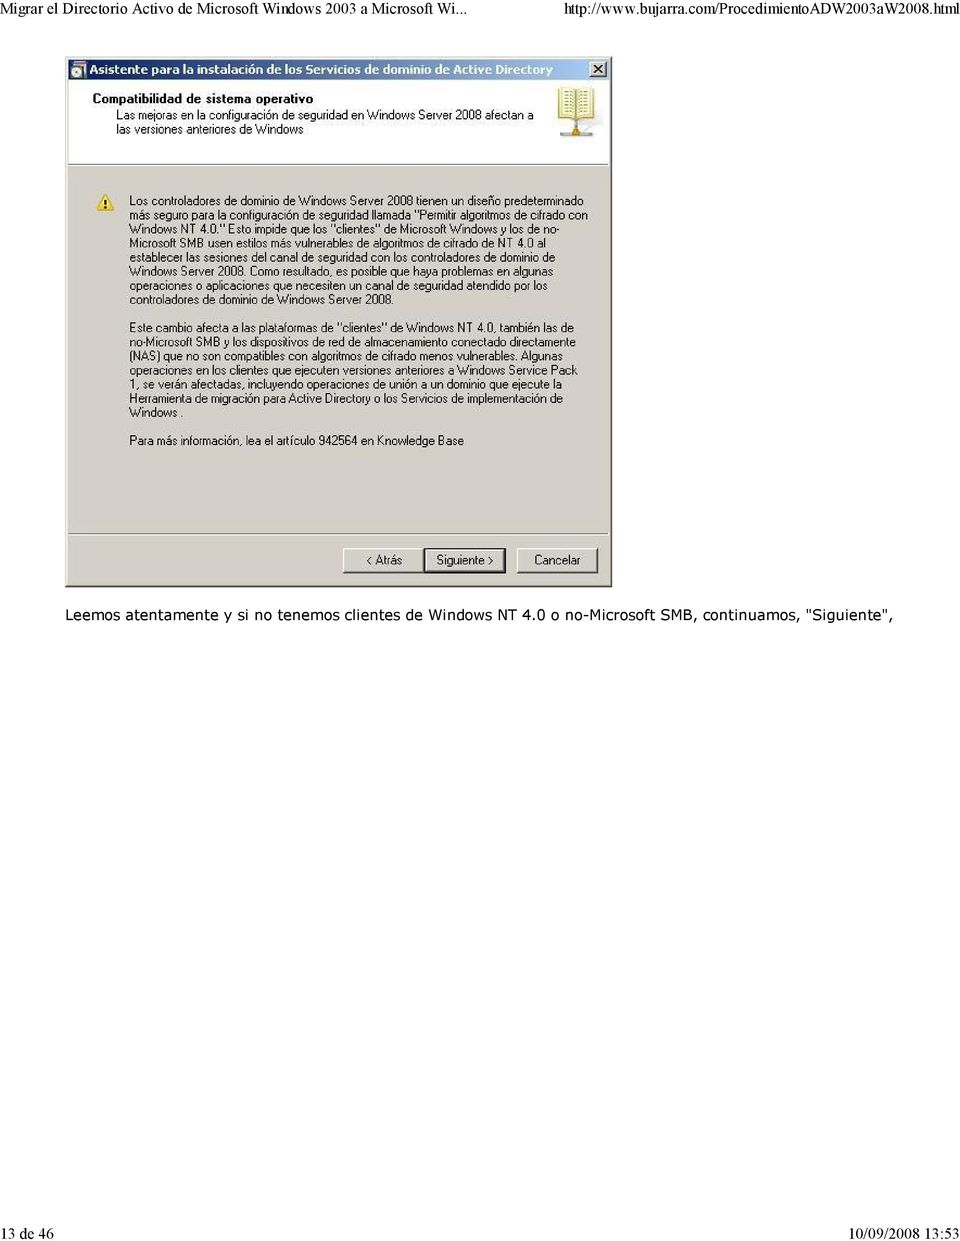 clientes de Windows NT 4.